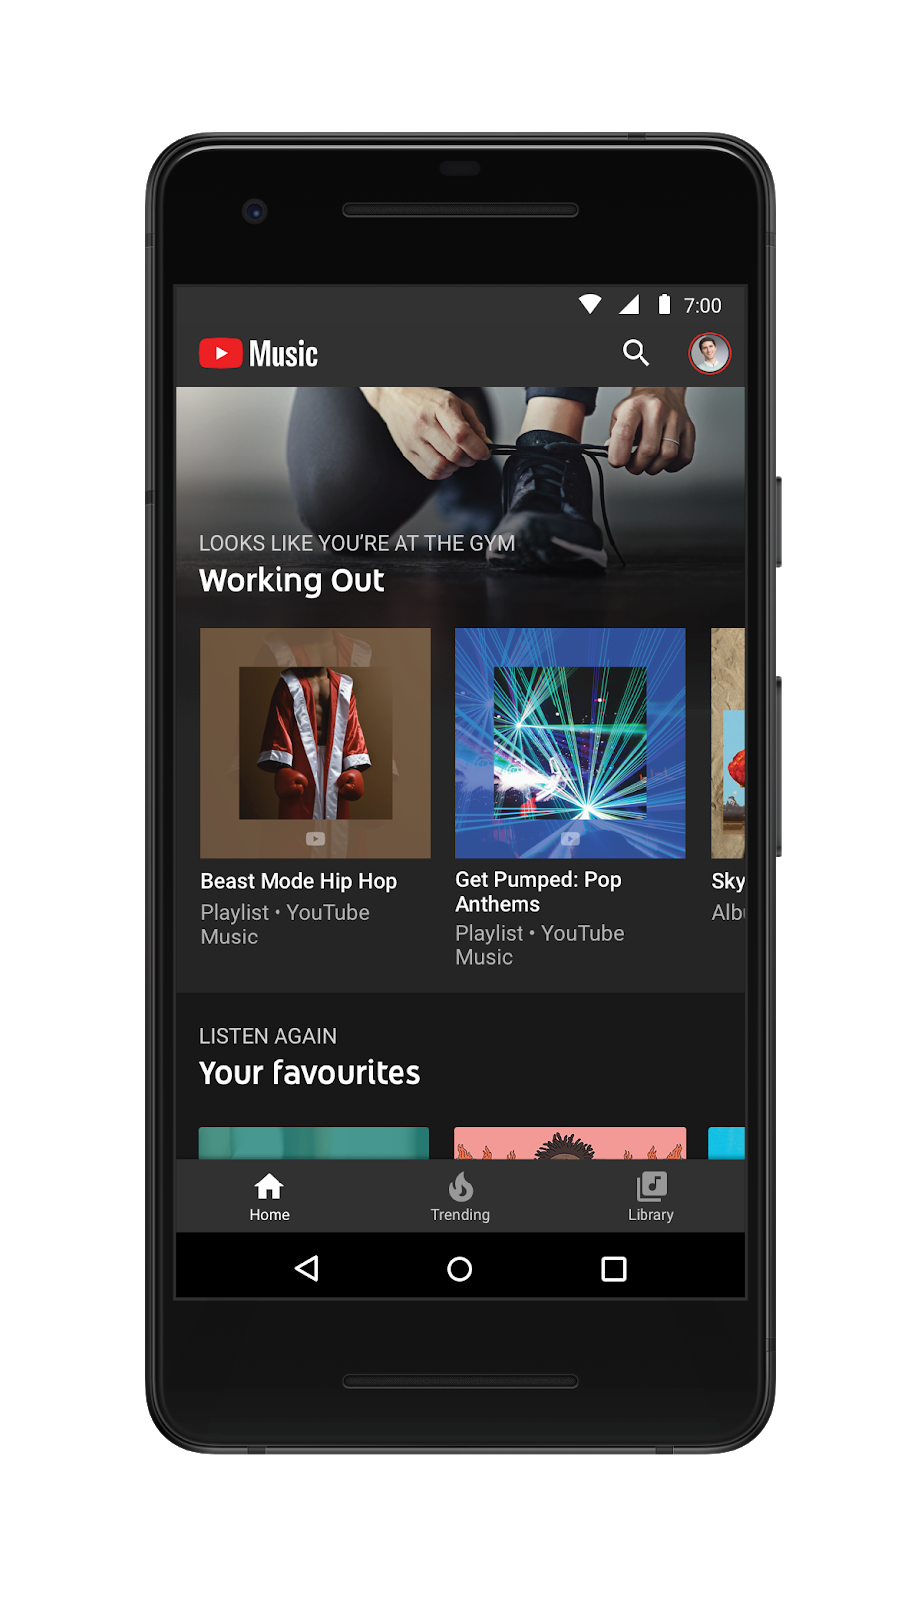 Ten top tips for getting the most out of YouTube Music